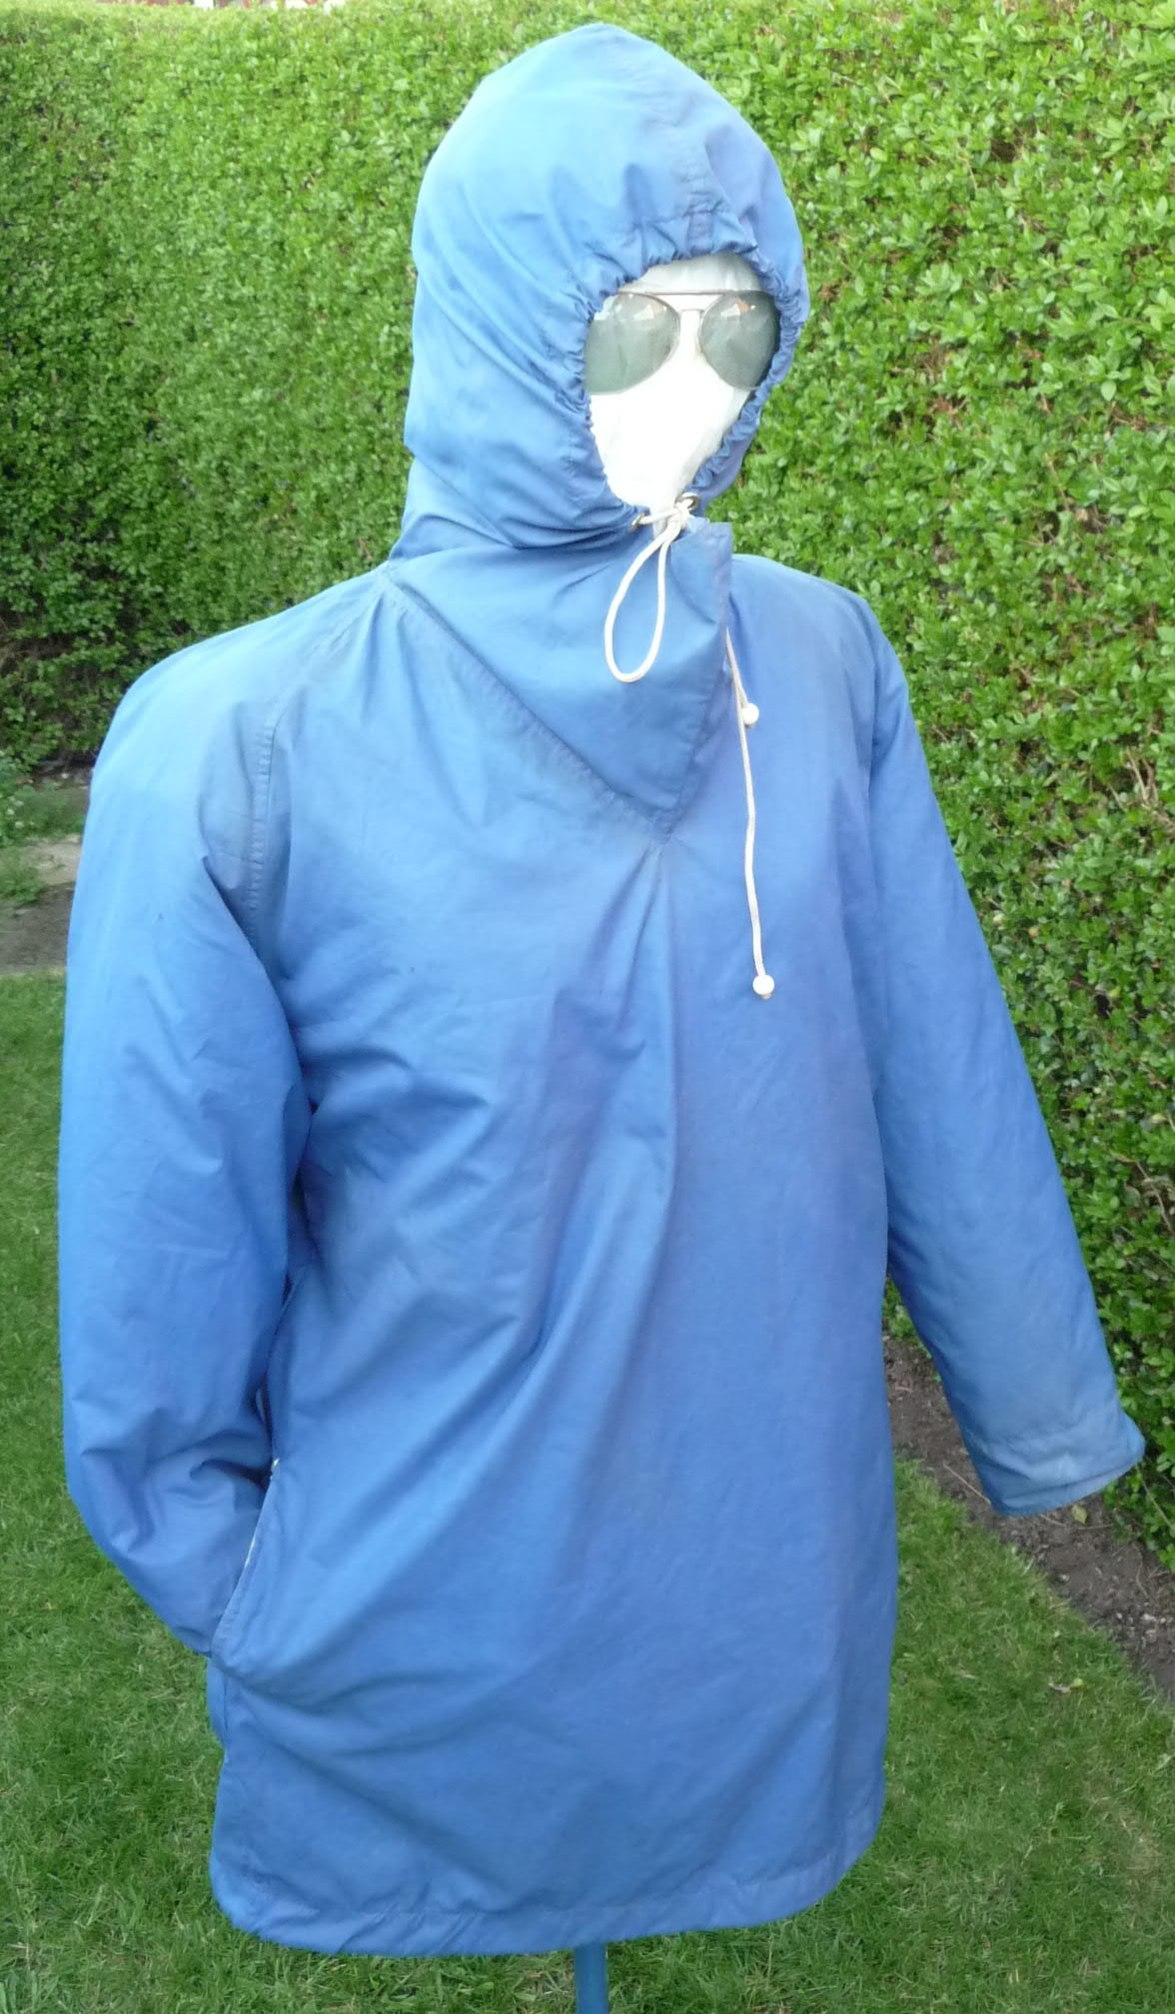 062e93591 Cagoule - The complete information and online sale with free ...